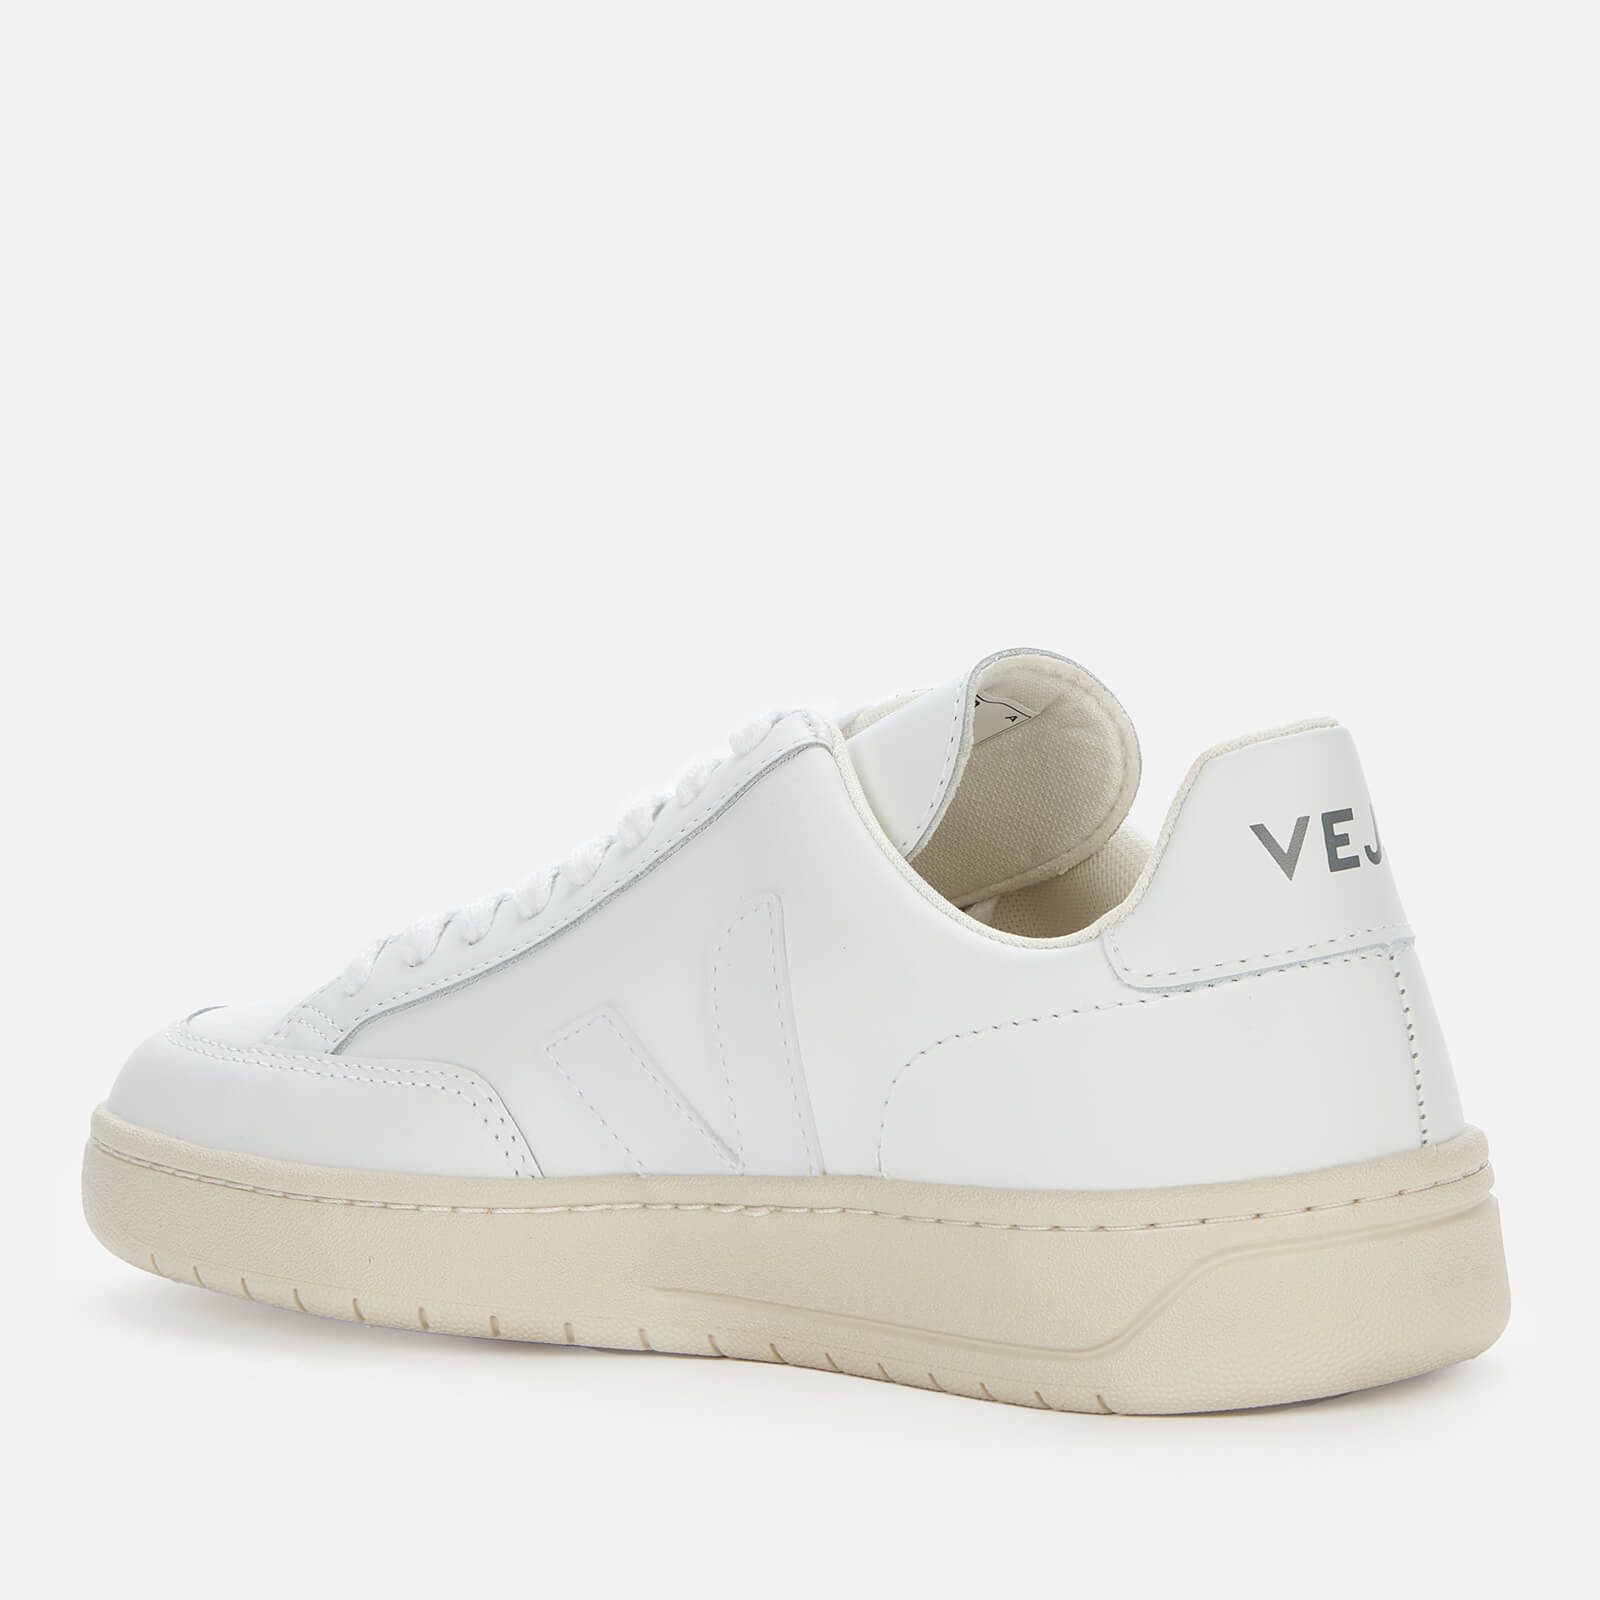 Veja Women's V-12 Leather Trainers - Extra White